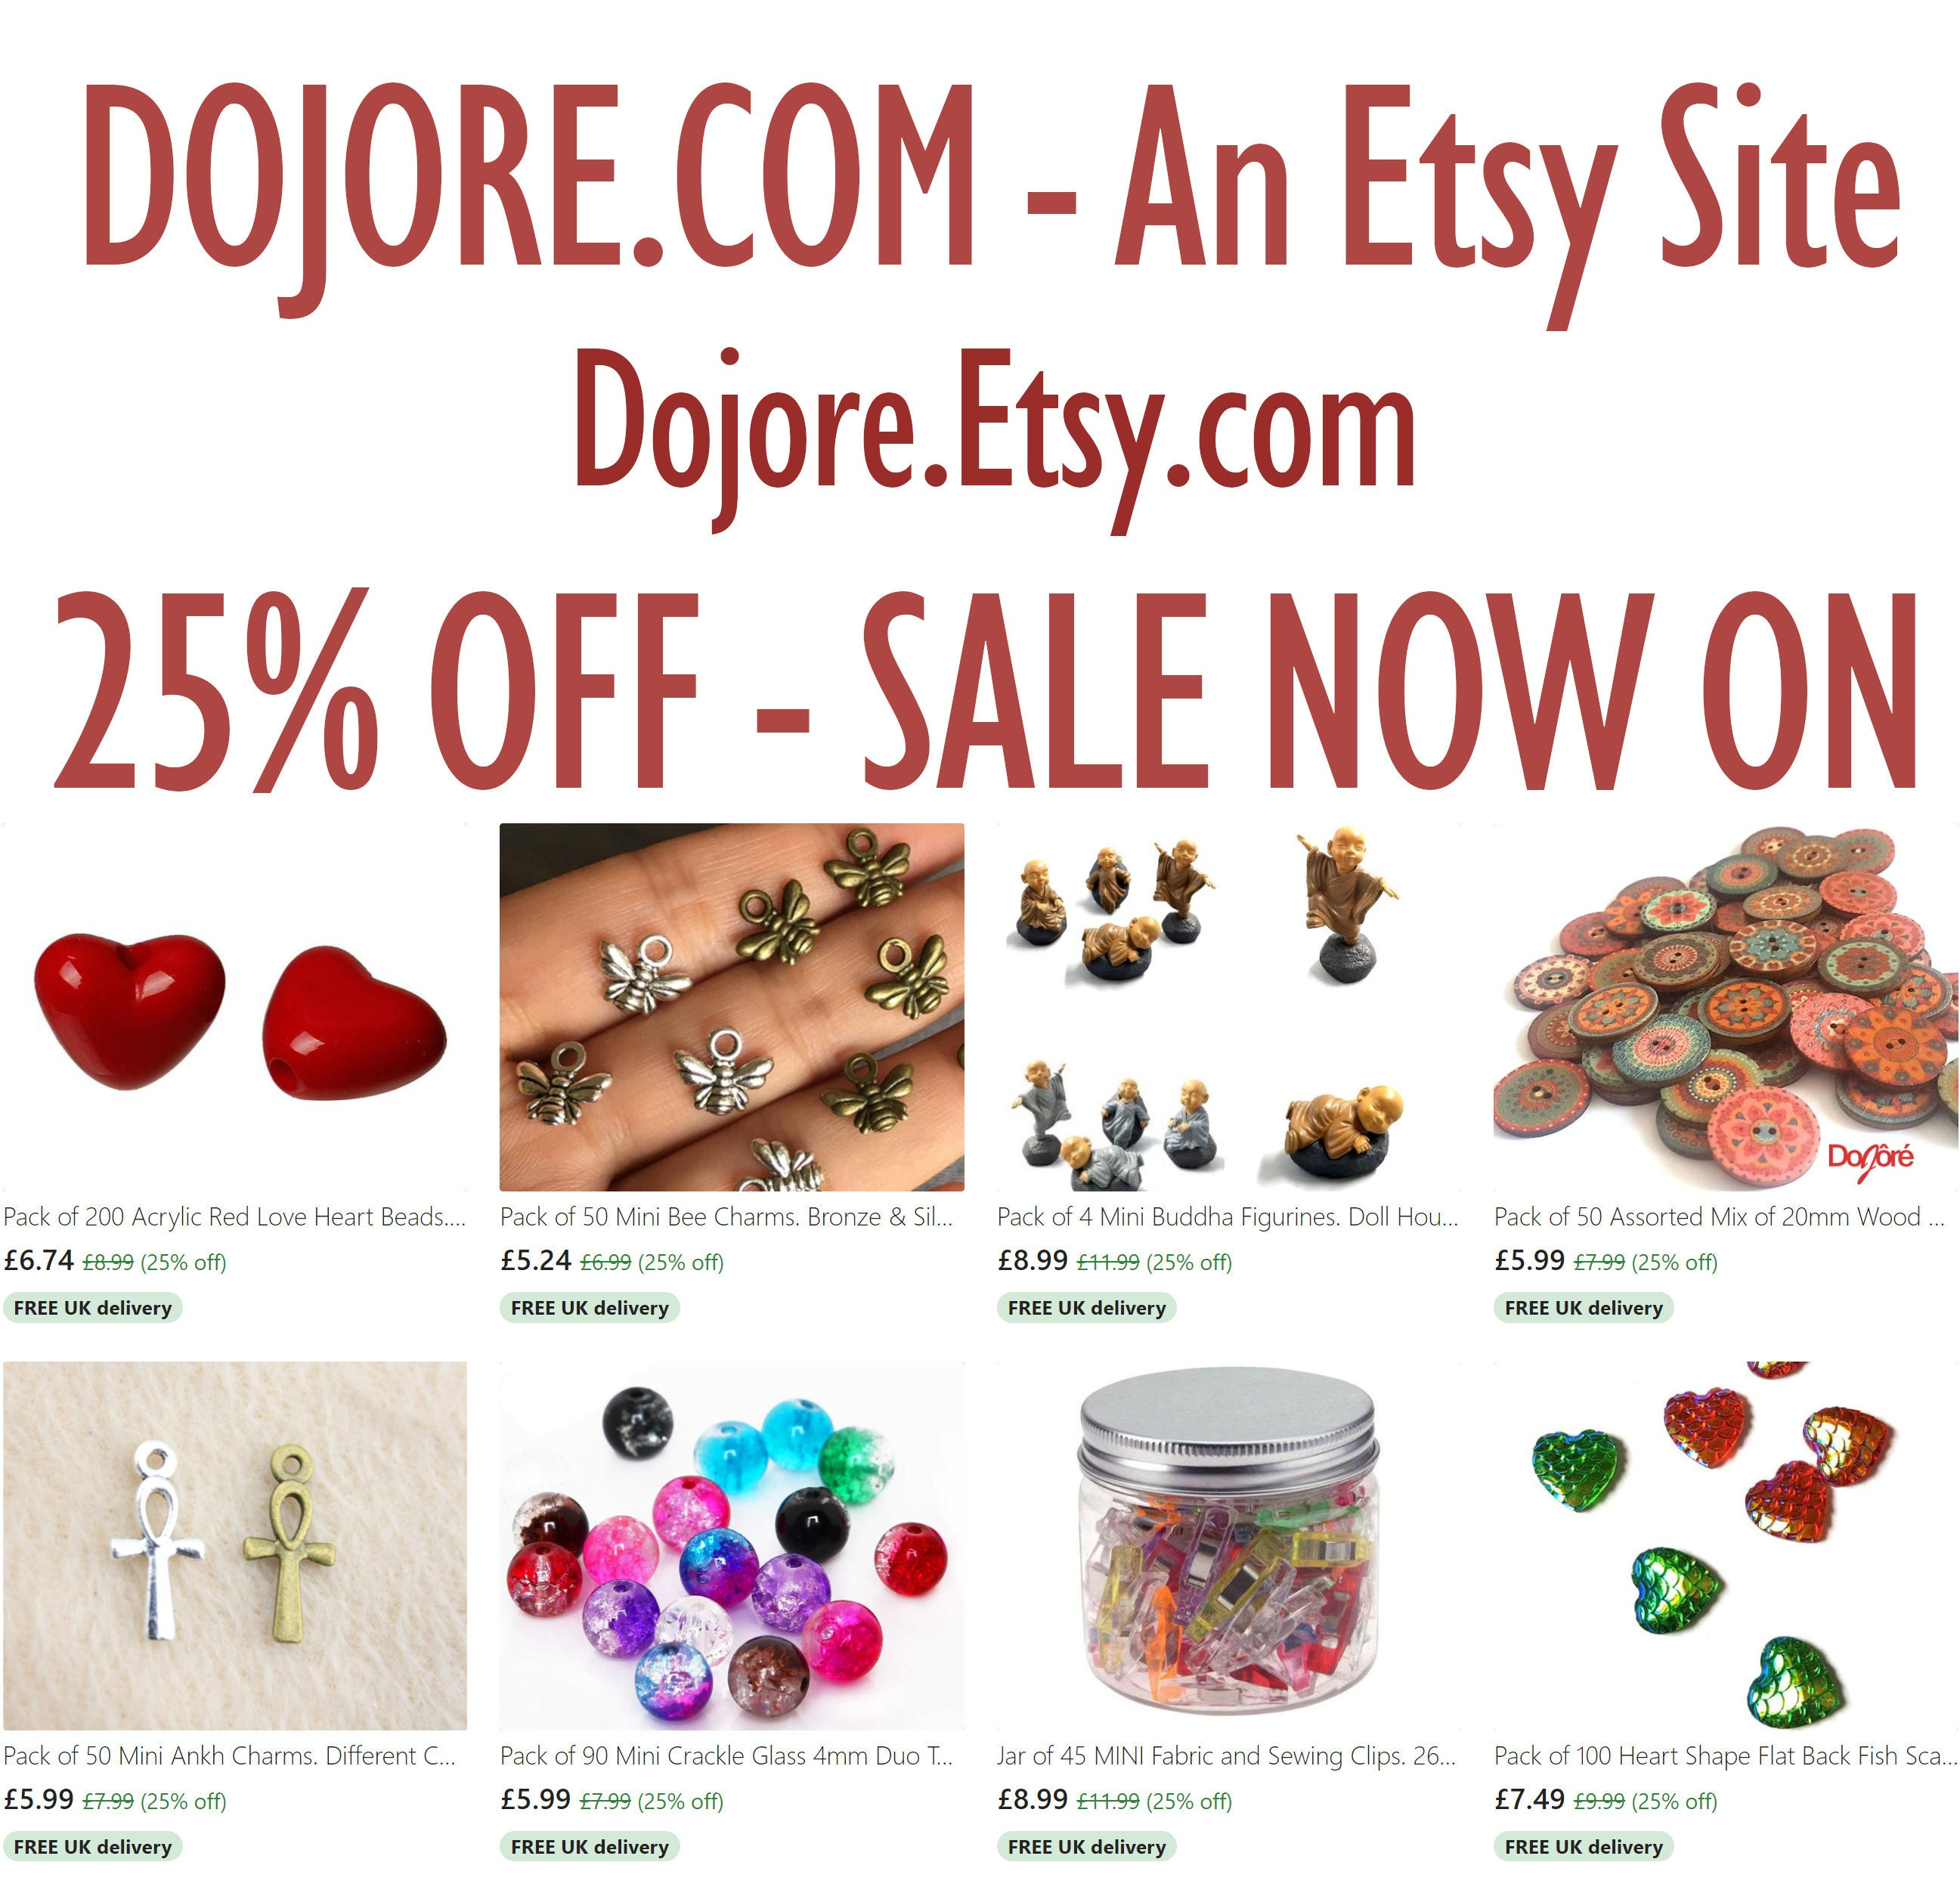 25% OFF - SALE NOW ON